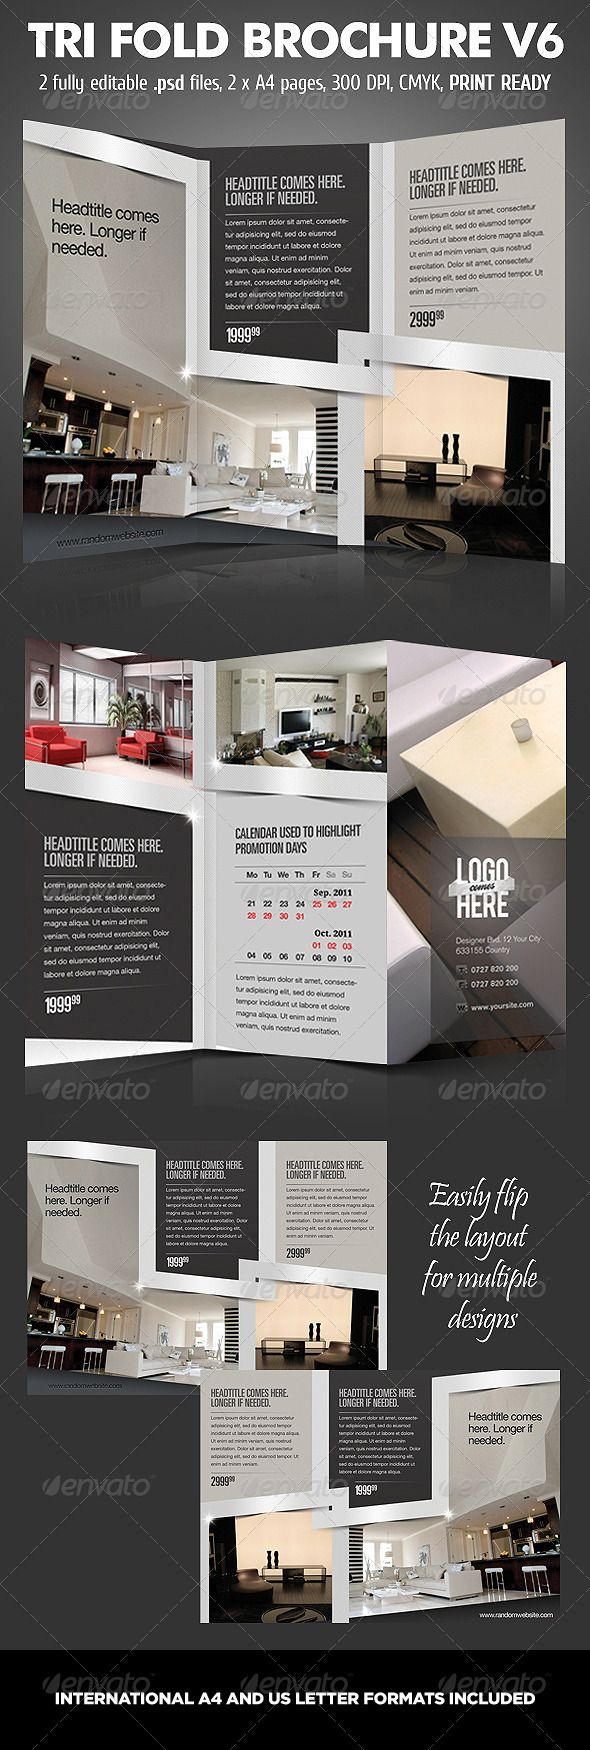 TriFold Brochure V6 #GraphicRiver Tri fold brochure design used for product presentation and business promotion. Multifunctional design suited for almost all products. The original color scheme is best suited for architecture / interior design brochures. Also it can be used for technology / IT tri-fold brochures, as the metallic look suits those business quite a lot. Fully layered .psd files, A4, 300 dpi. Easily customizable colors for unique combinations. Photos are NOT part of the design…